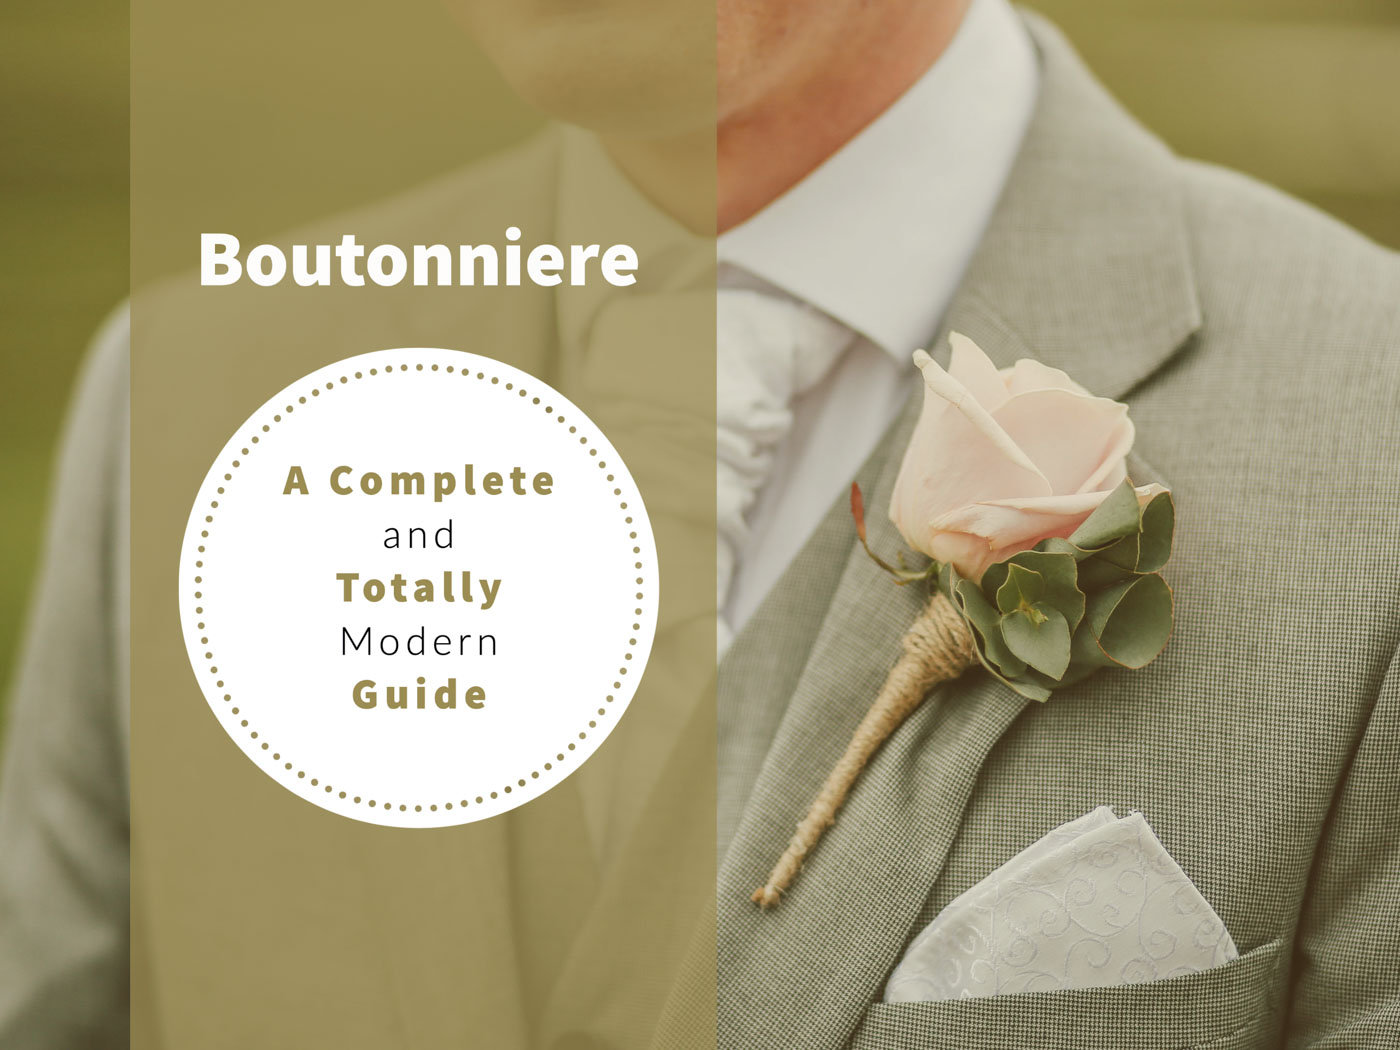 A Complete and Totally Modern Guide to the Boutonniere